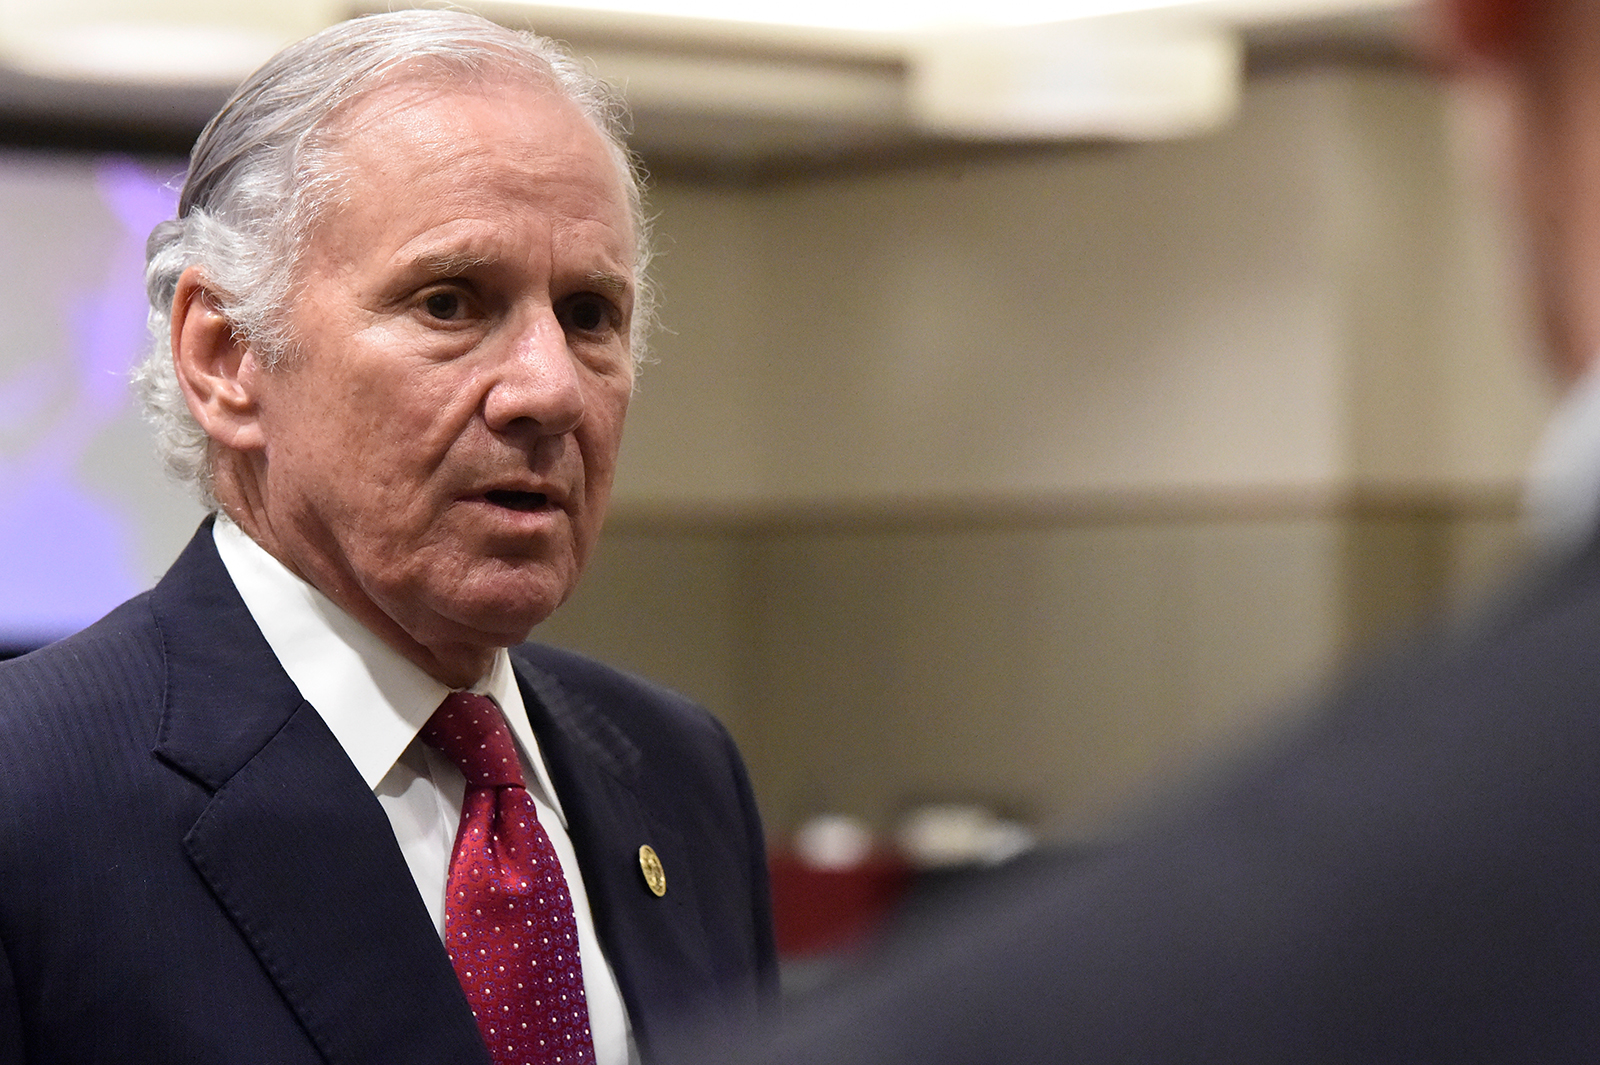 Gov. Henry McMaster speaks with reporters after the first meeting of accelerateSC, his advisory group about reopening the state economy, in Columbia, South Carolina on April 23.